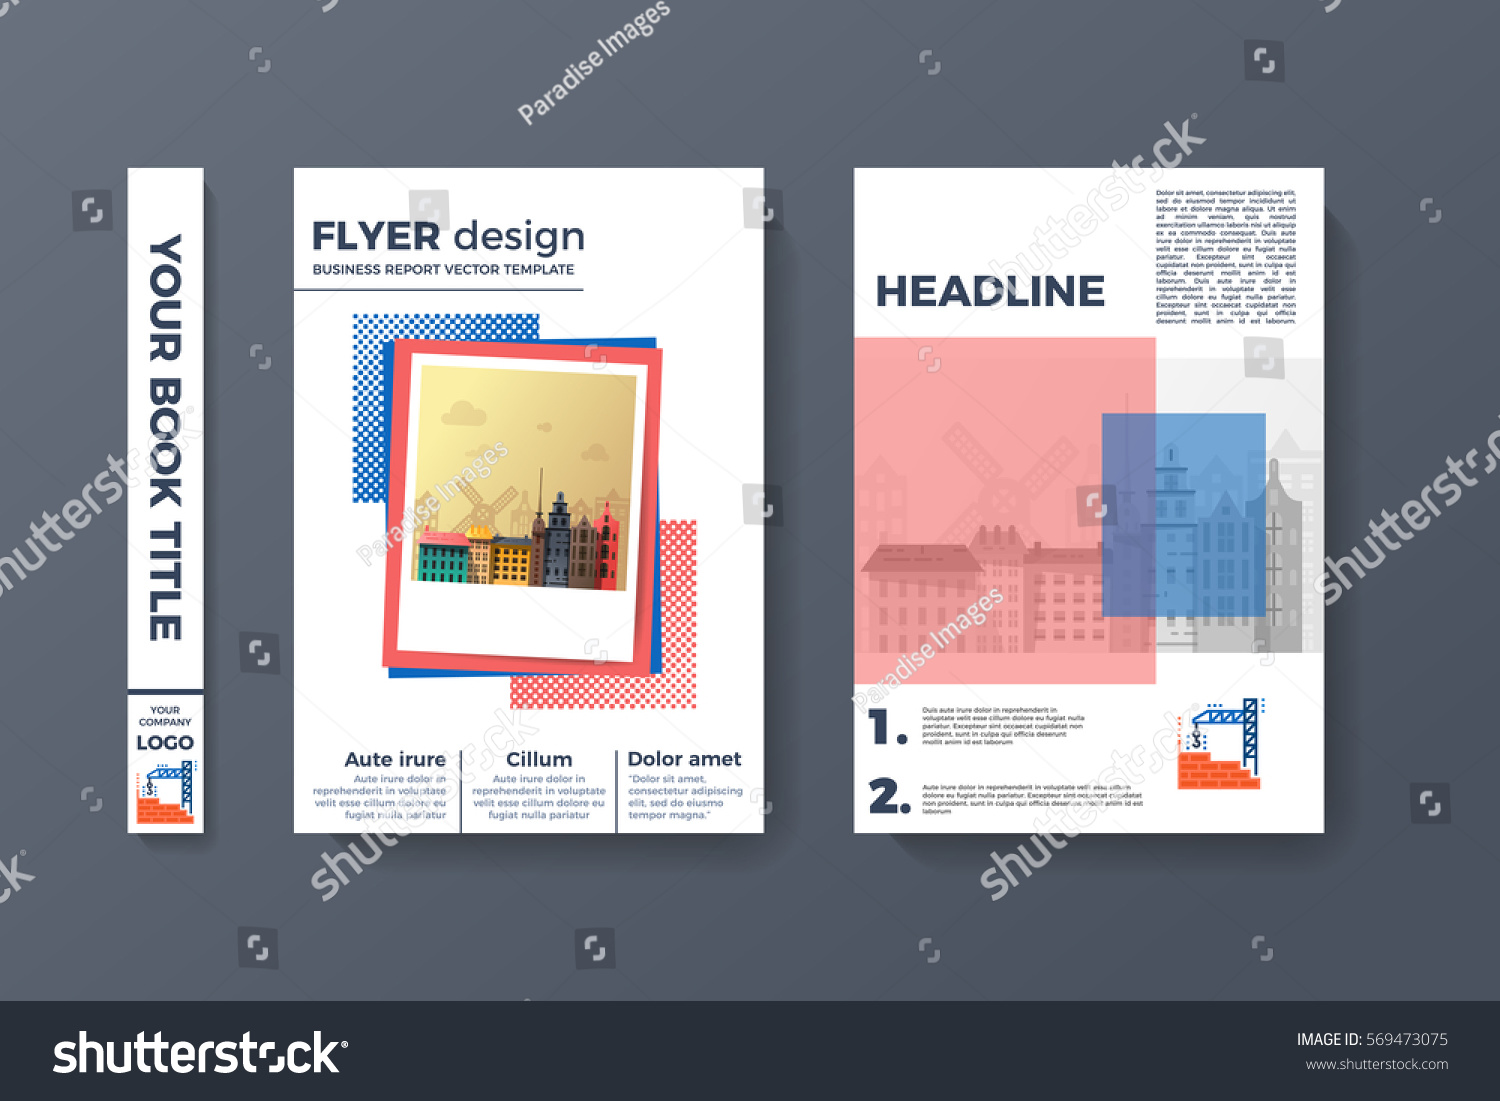 Flyer design brochure template vector a 4 stock vector hd royalty brochure template vector a4 abstract binder layout creative book front flashek Images